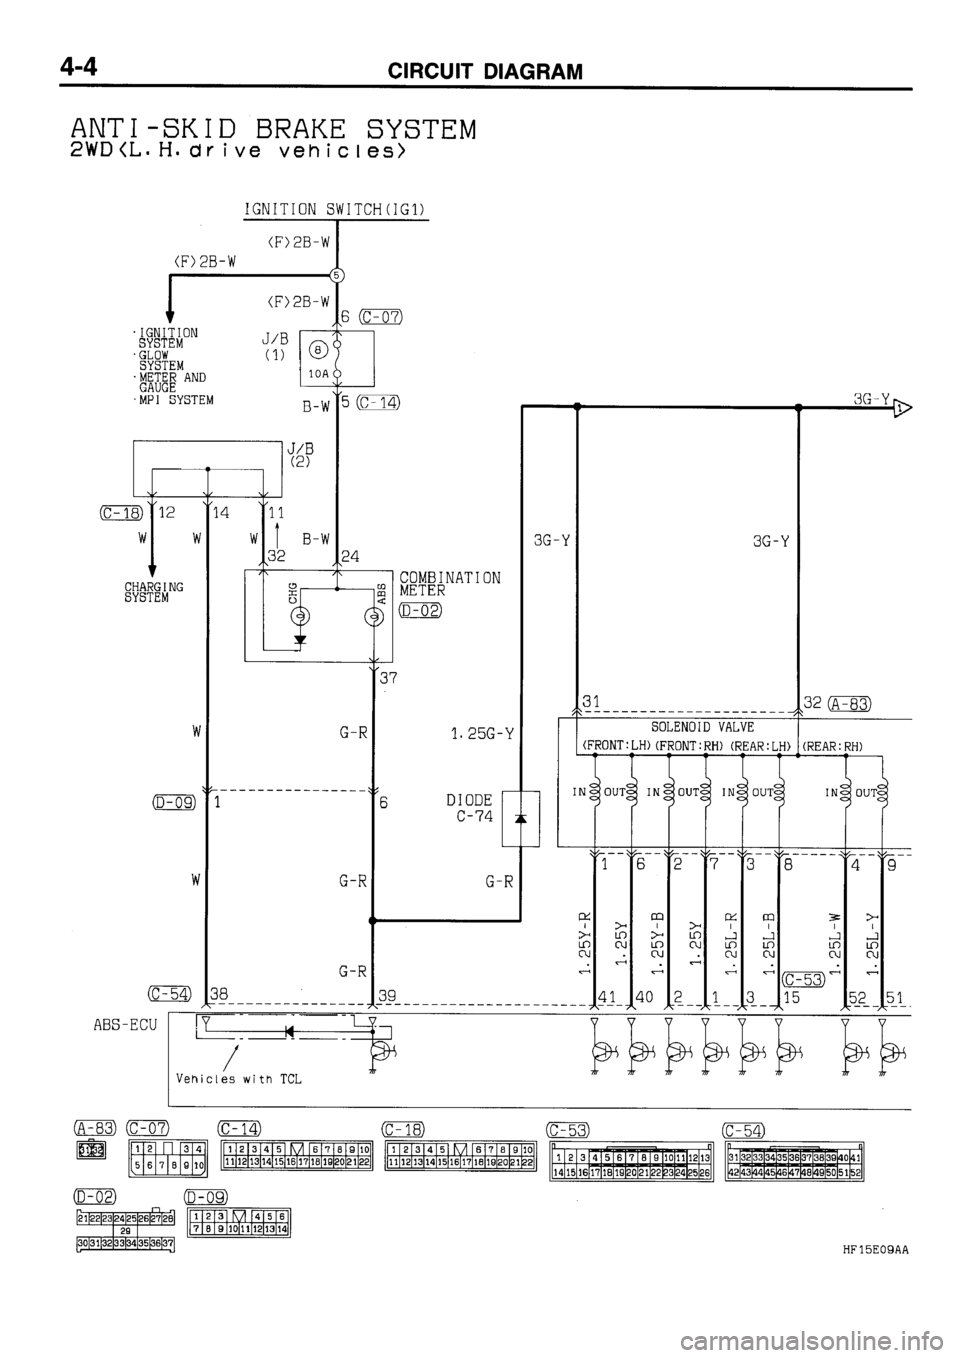 95 galant wiring diagram 95 condenser fan motor wiring diagram 89 Mitsubishi Galant A Picture of a 95 Mitsubishi Galant Pics of a 95 Mitsubishi Galant on 95 galant wiring diagram